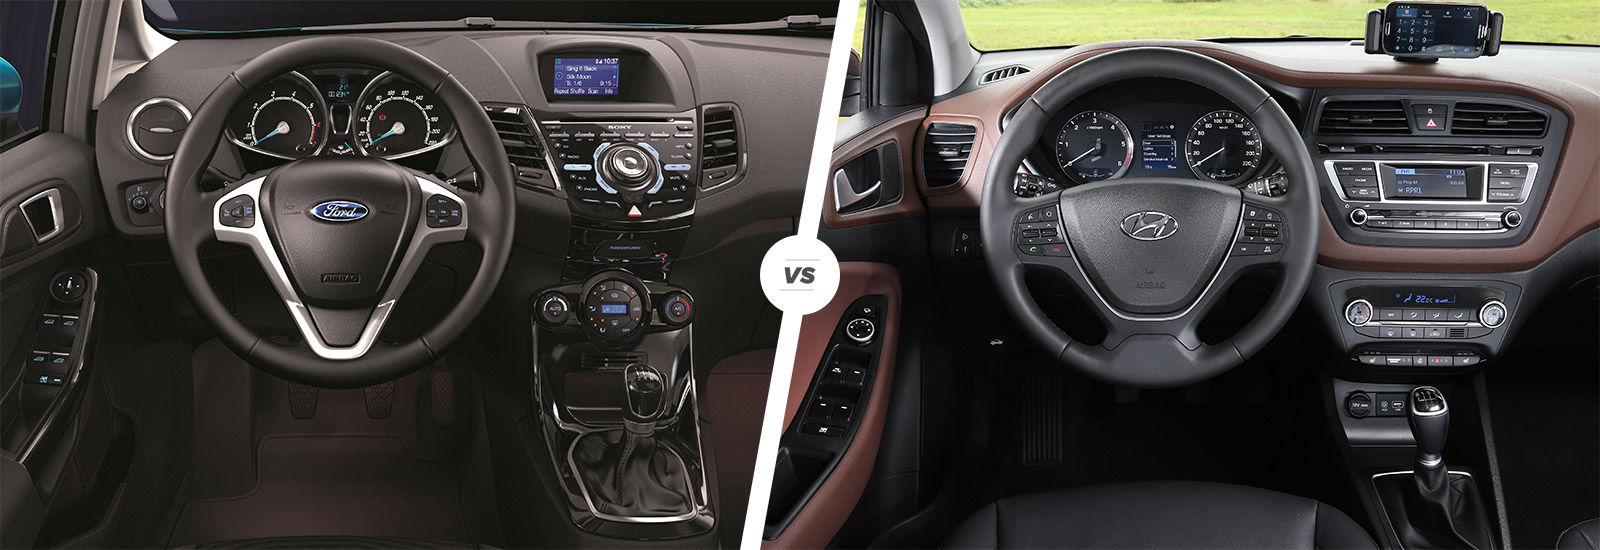 Ford Fiesta Vs Hyundai I20 Comparison Carwow